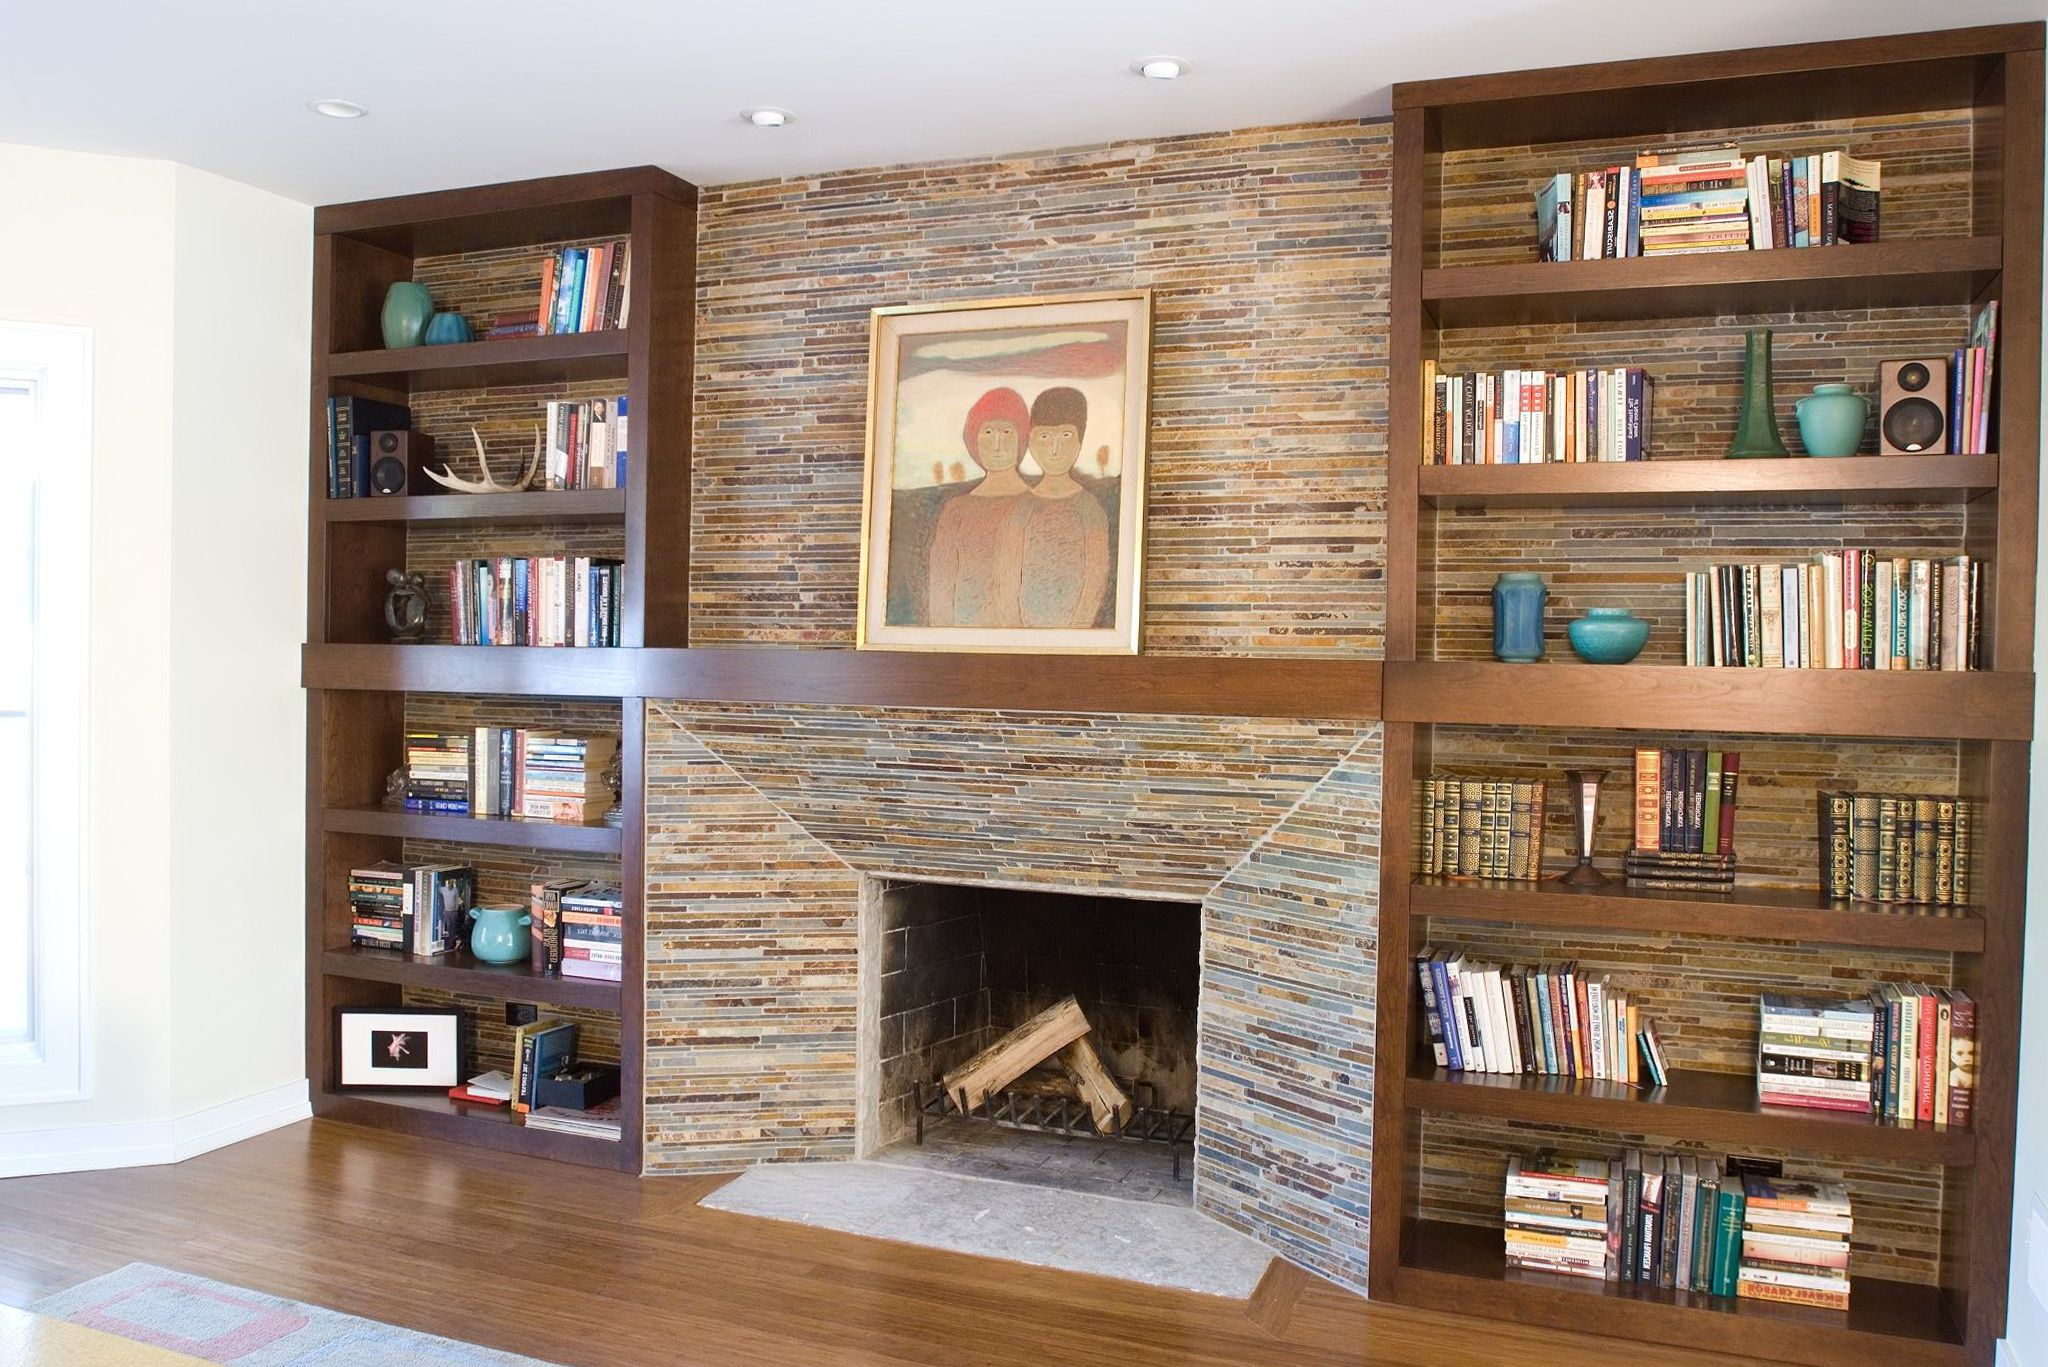 Fireplace bookcase on pinterest bookshelves around fireplace shelv - Bookshelves Around Fireplace Google Search